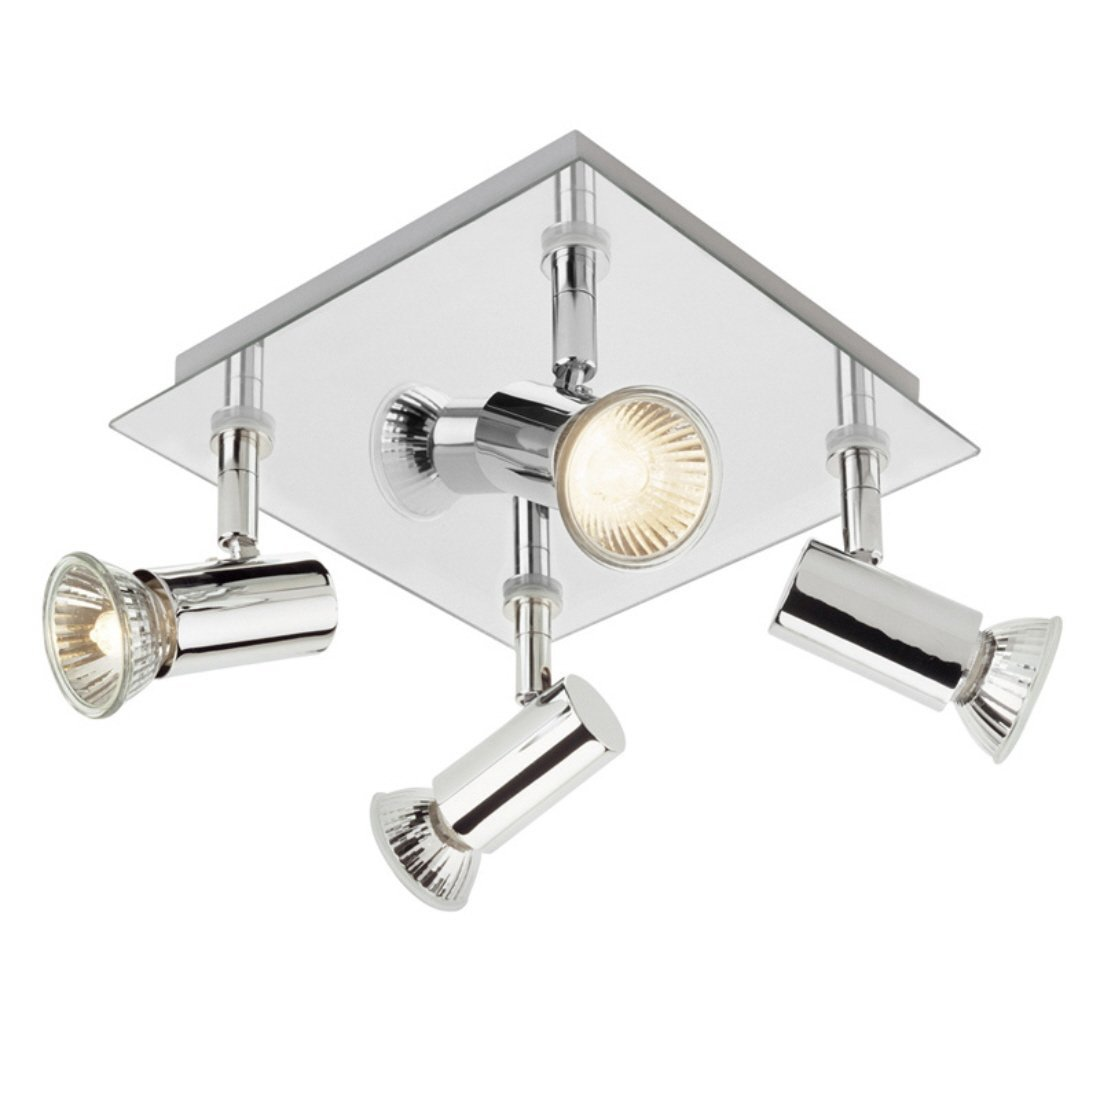 Modern square chrome 4 way gu10 ceiling spotlight amazon modern square chrome 4 way gu10 ceiling spotlight amazon lighting mozeypictures